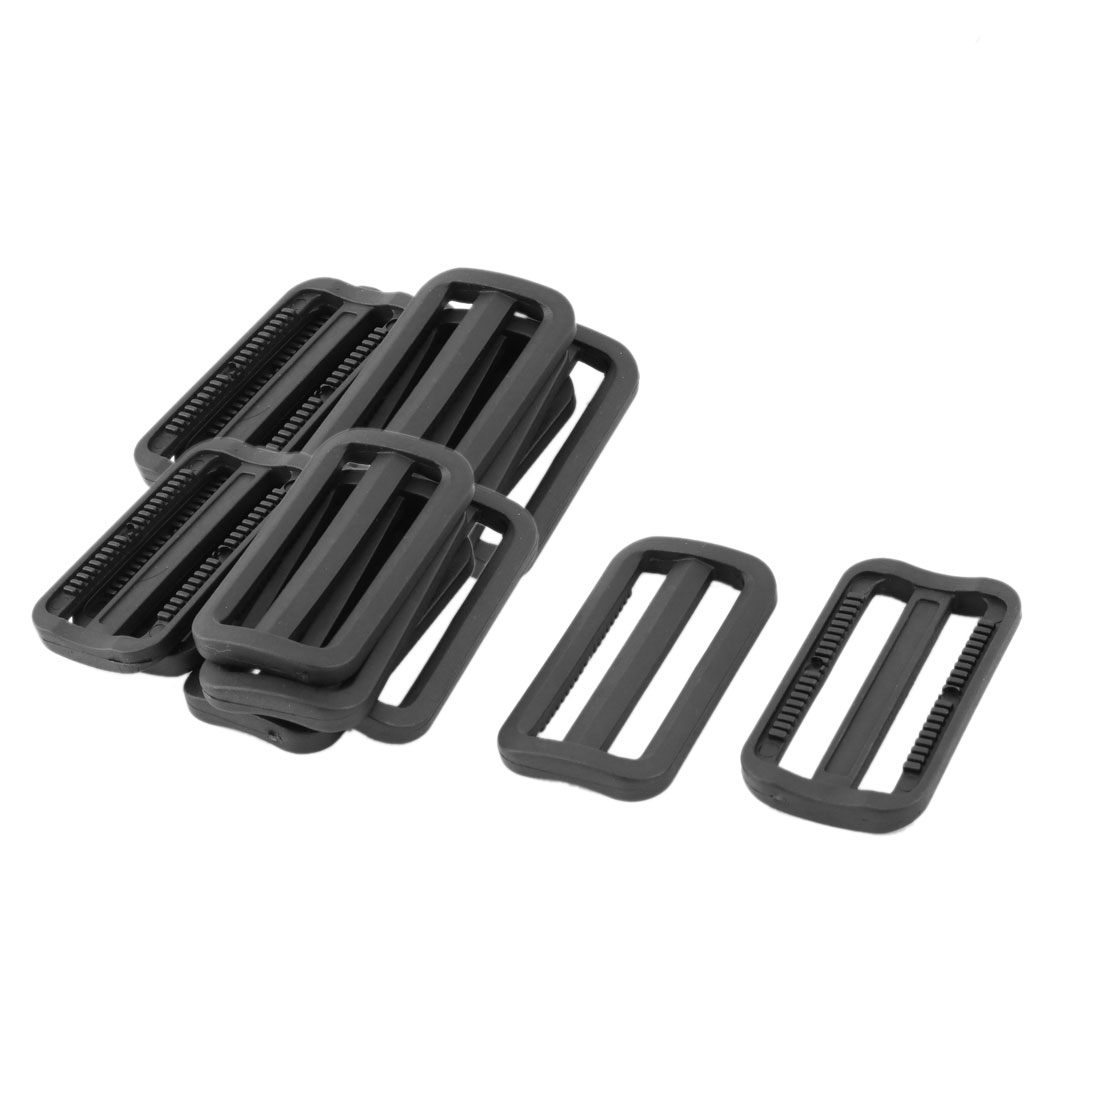 Outdoor Plastic Adjustable Backpack Strap Tri Glide Buckle Black 2.4 Inches Length 15pcs